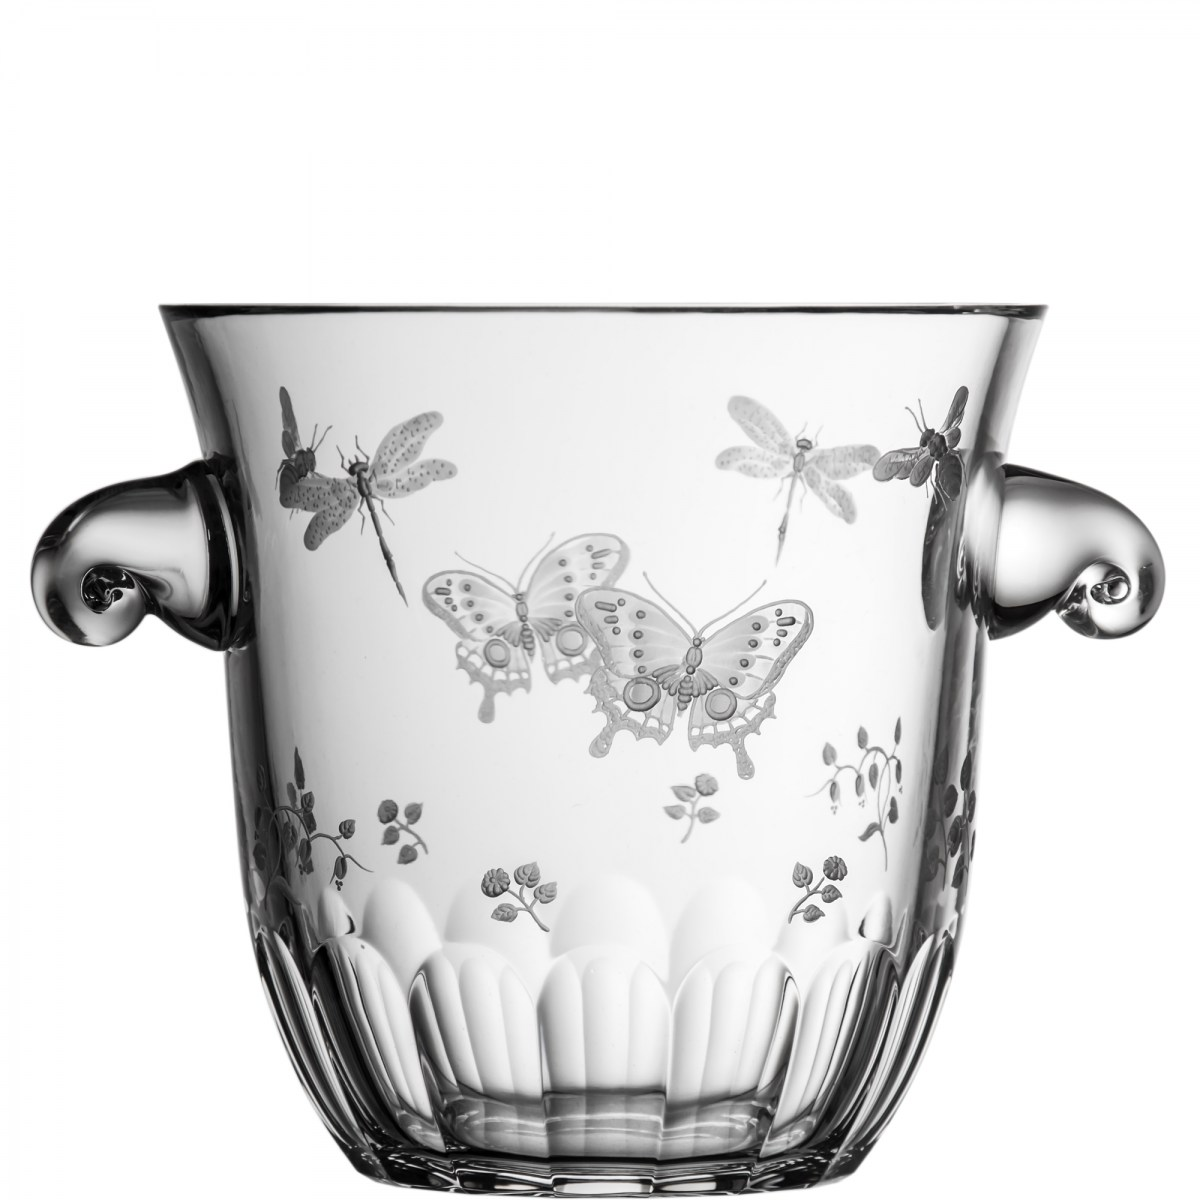 Springtime Champagne Bucket - $ 455 / € 398